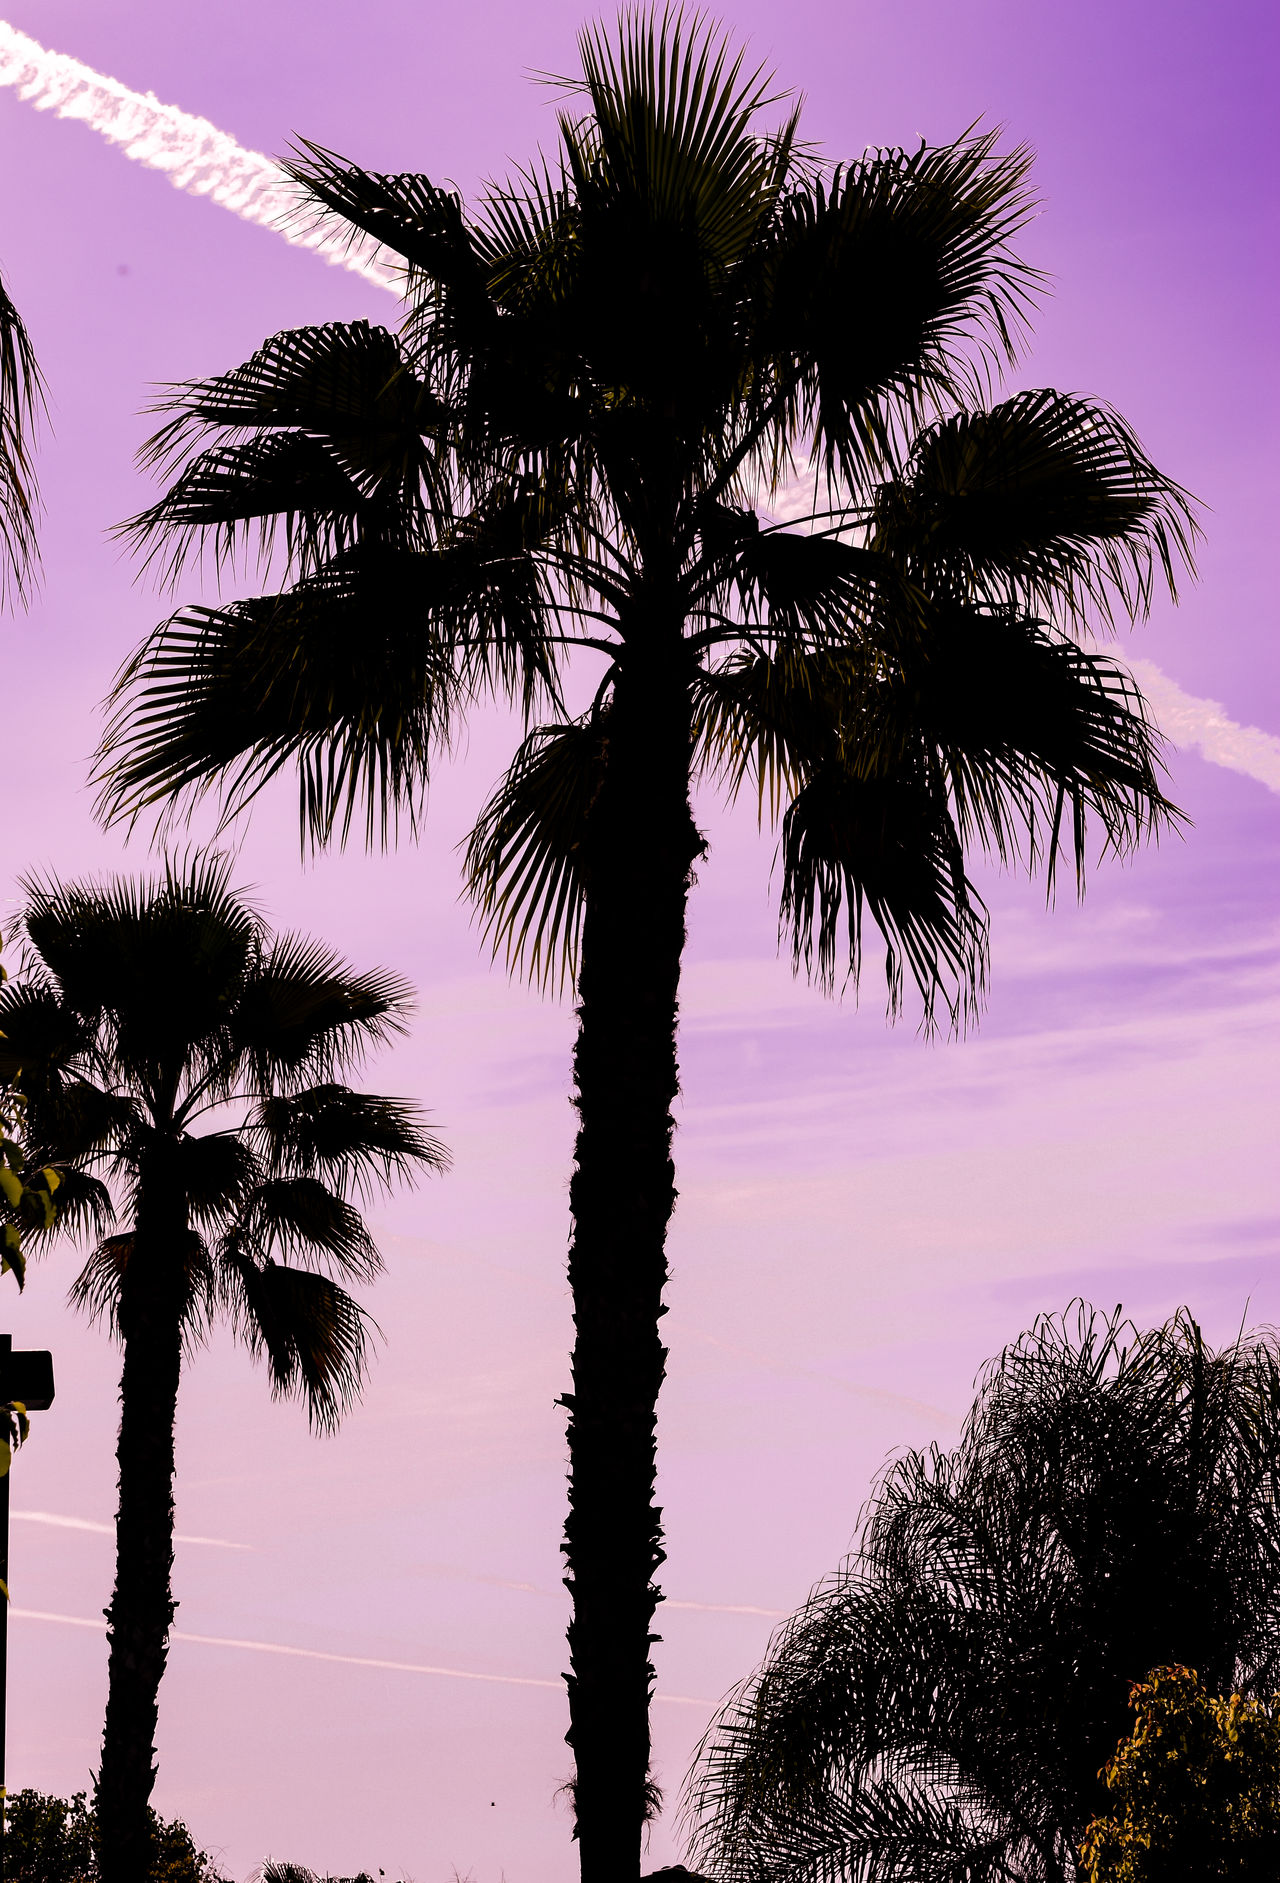 Beauty In Nature Cloud - Sky Coconut Palm Tree Majestic Nature Outdoors Palm Tree Palm Tree Silhouette Palm Trees Purple Purple Sky Silhouette Sky Tall - High Tranquil Scene Tranquility Tree Tree Trunk